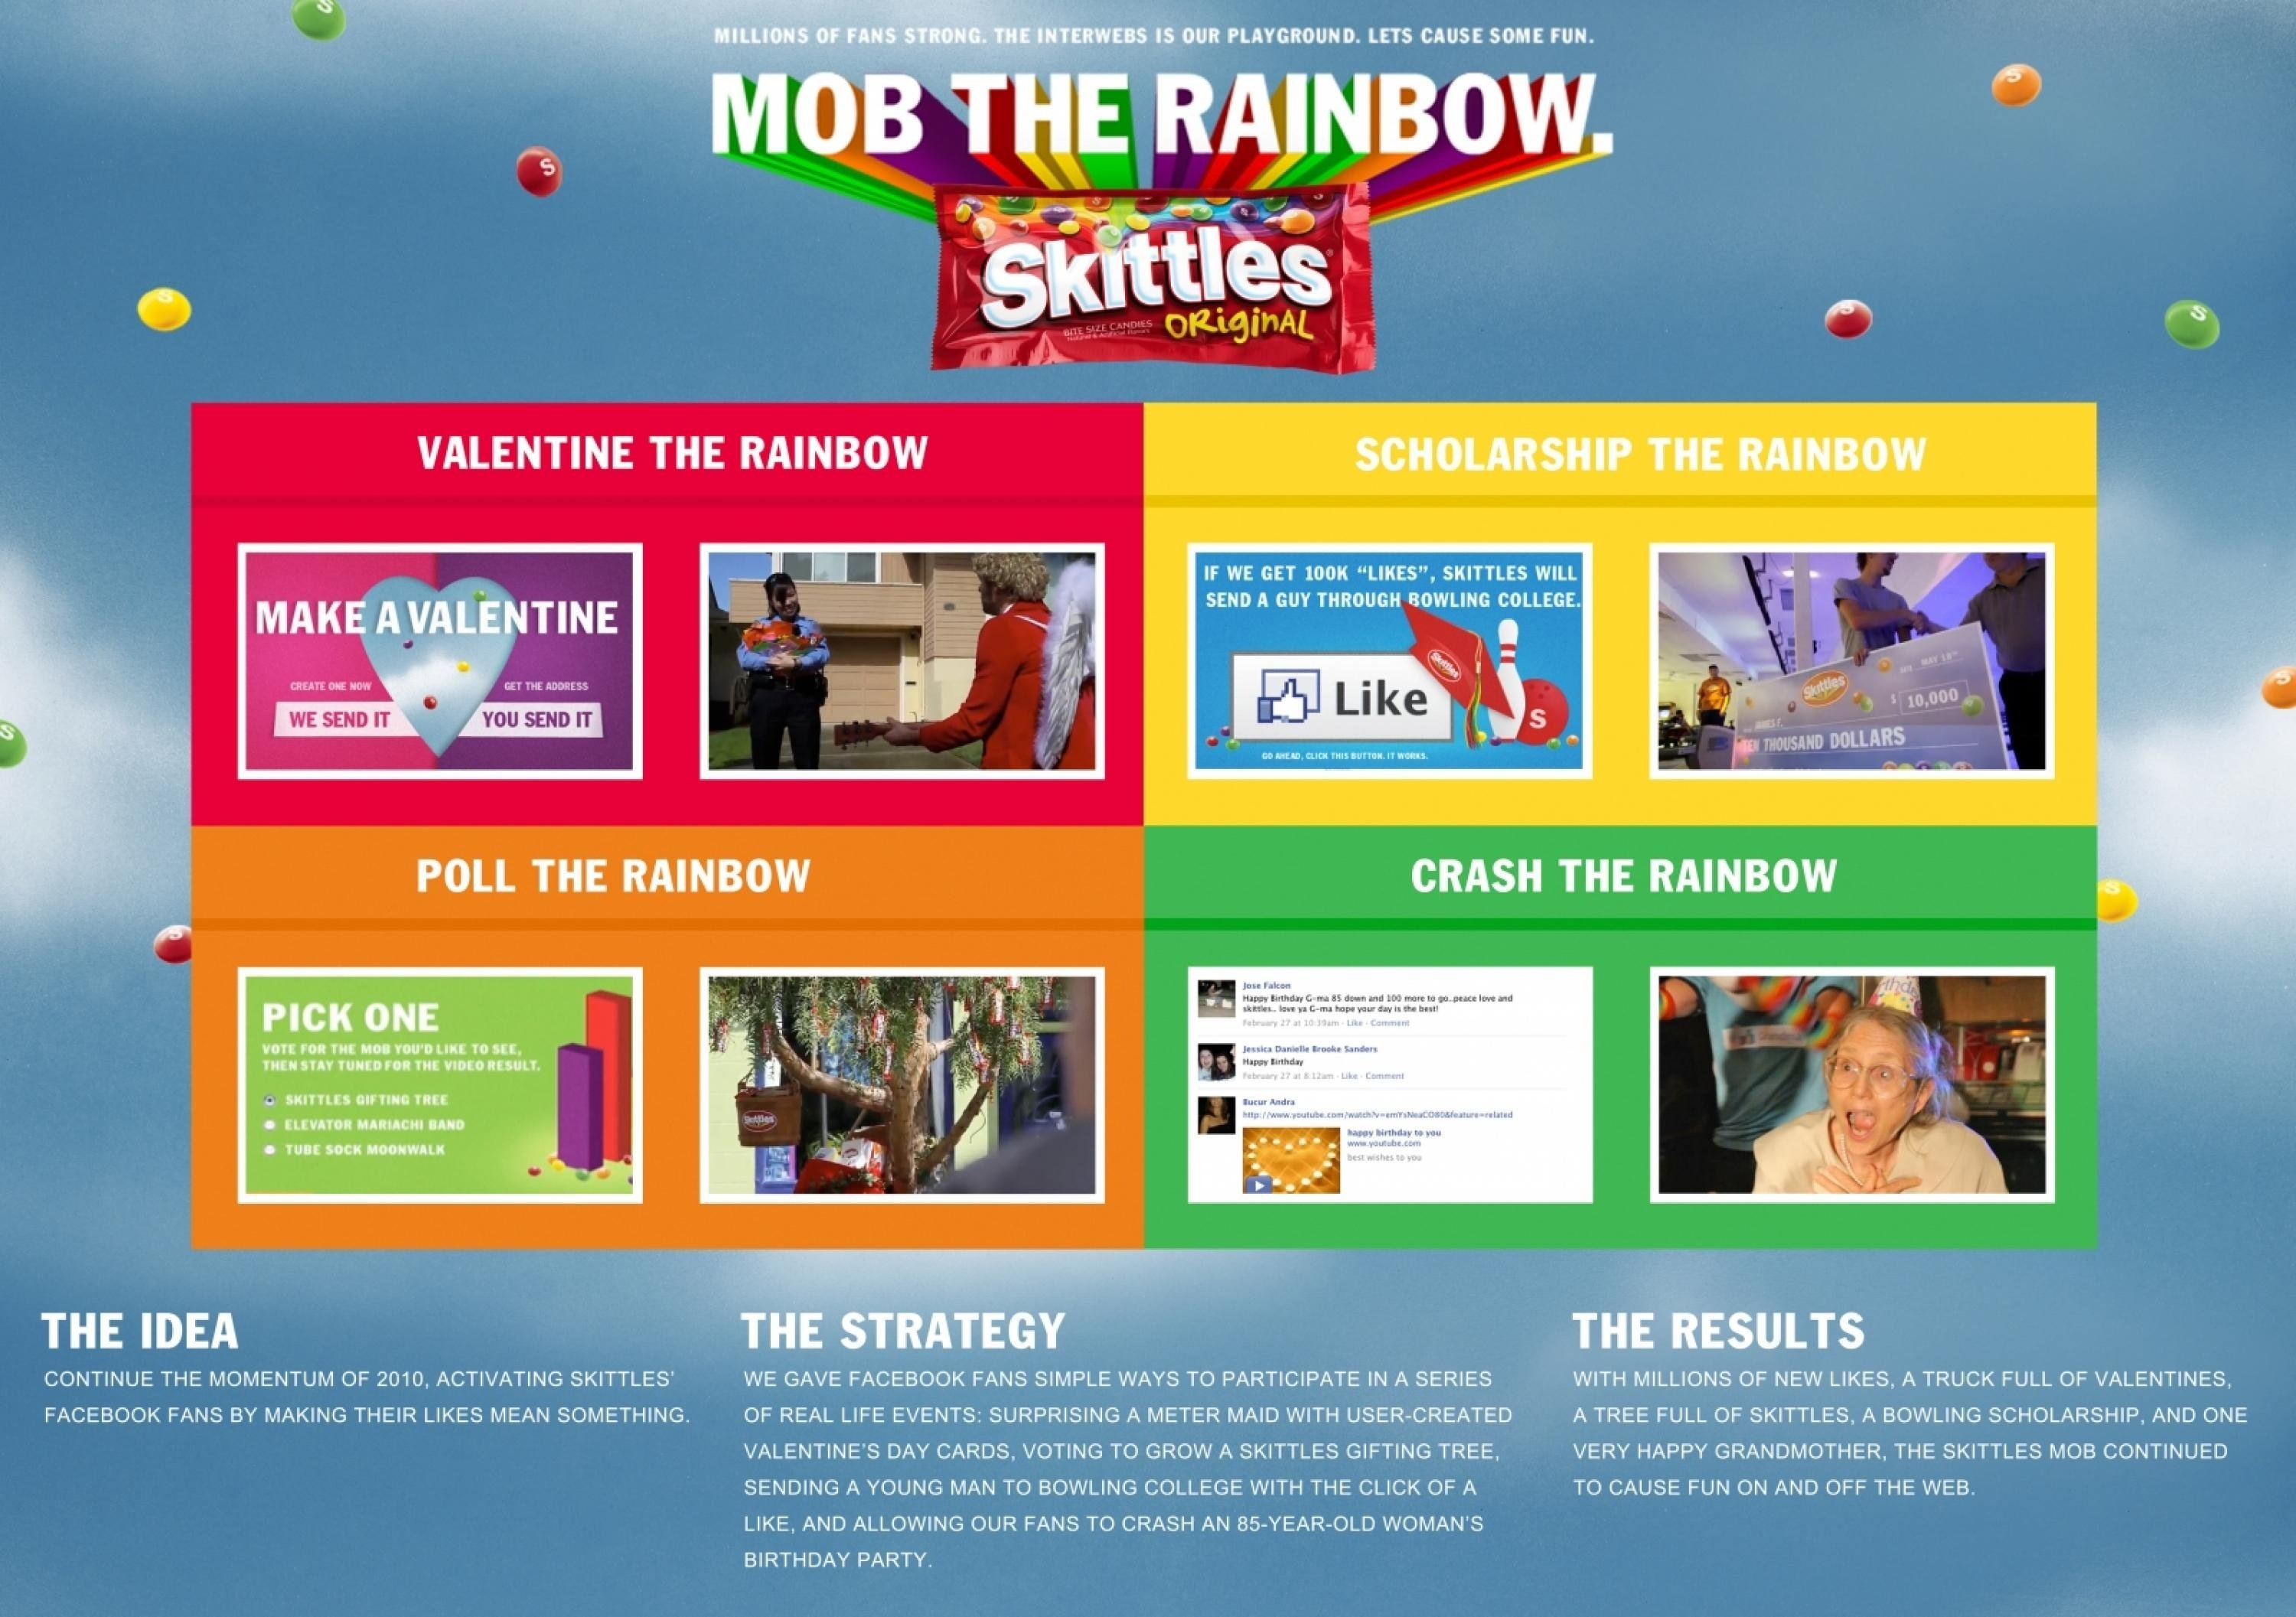 skittles mob the rainbow case study results